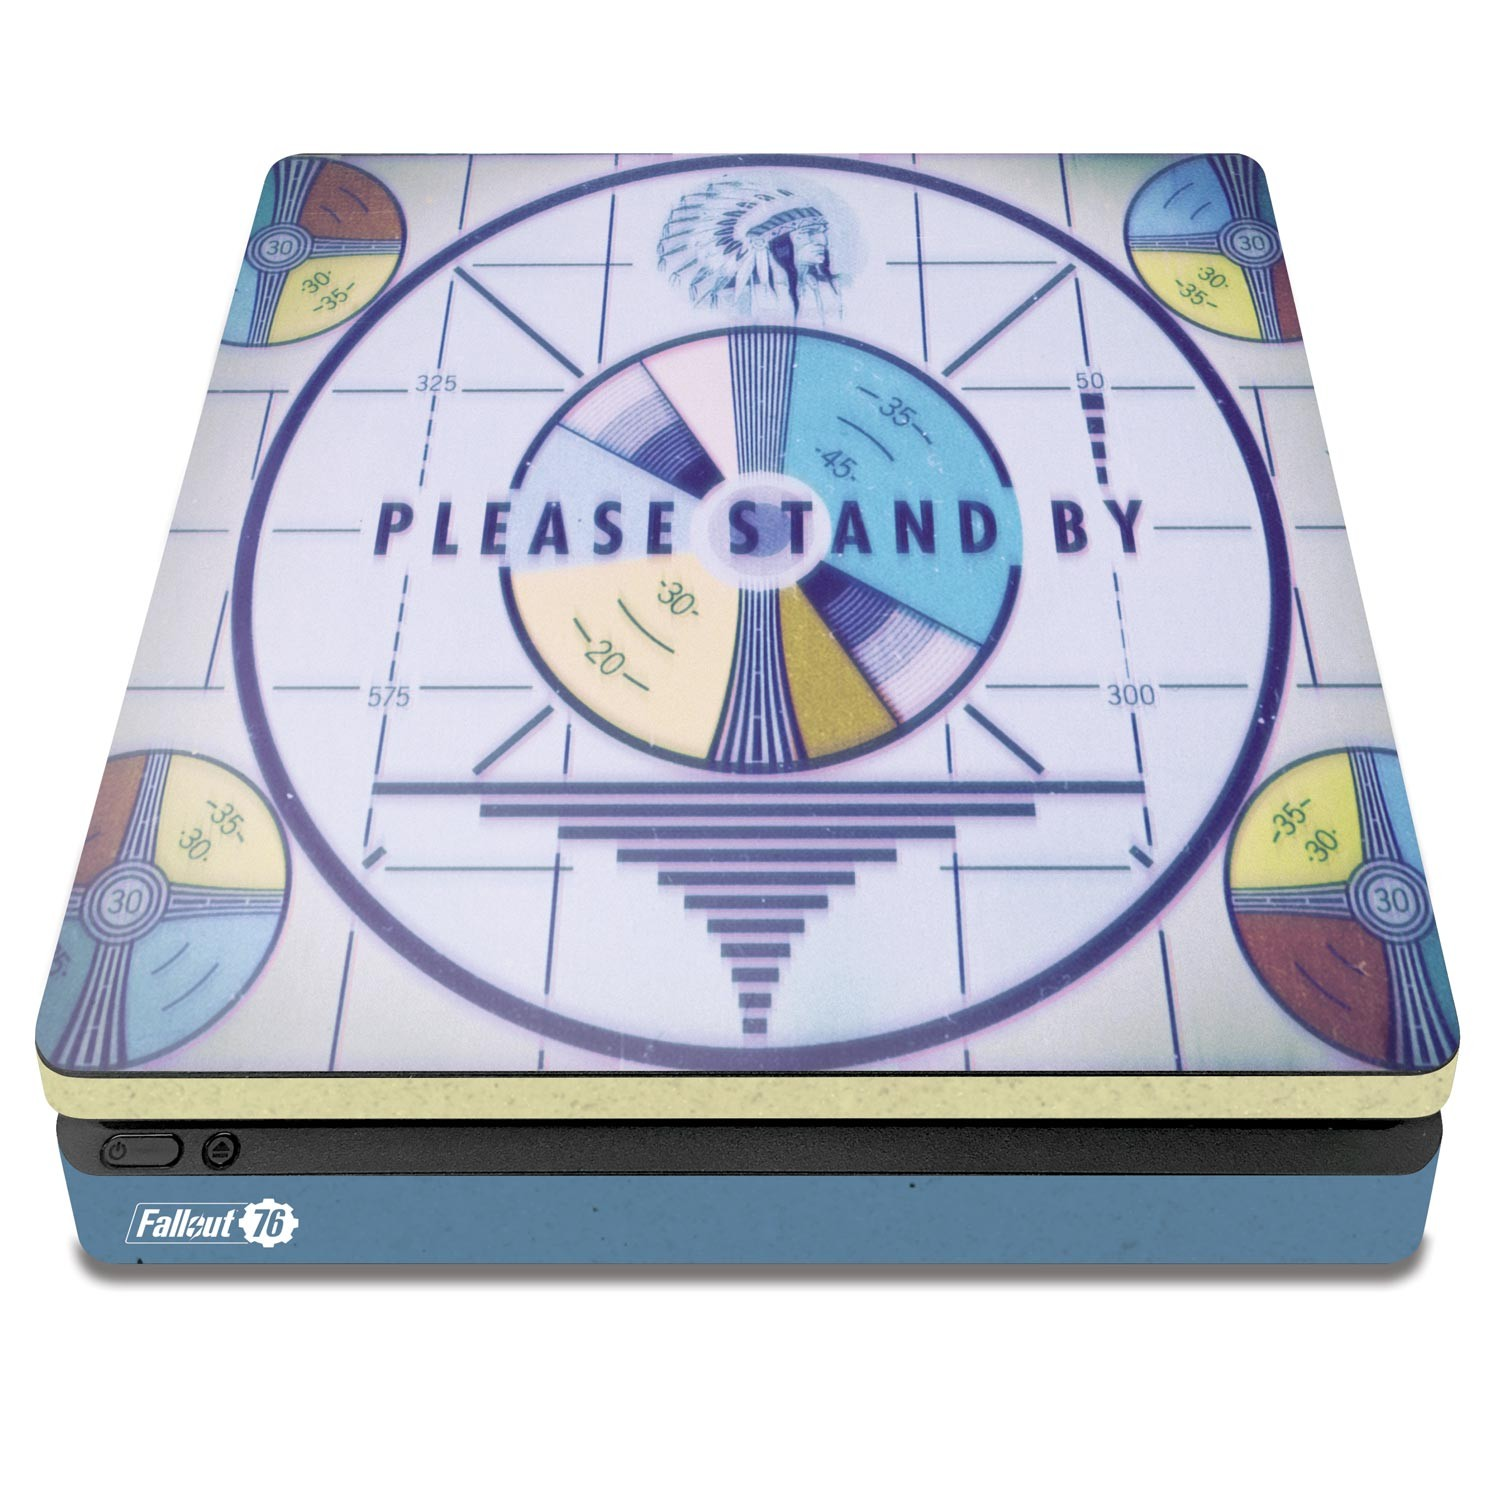 Officially Licensed Console Skin Bundle for PS4 Slim - Fallout 76 - Please Stand By